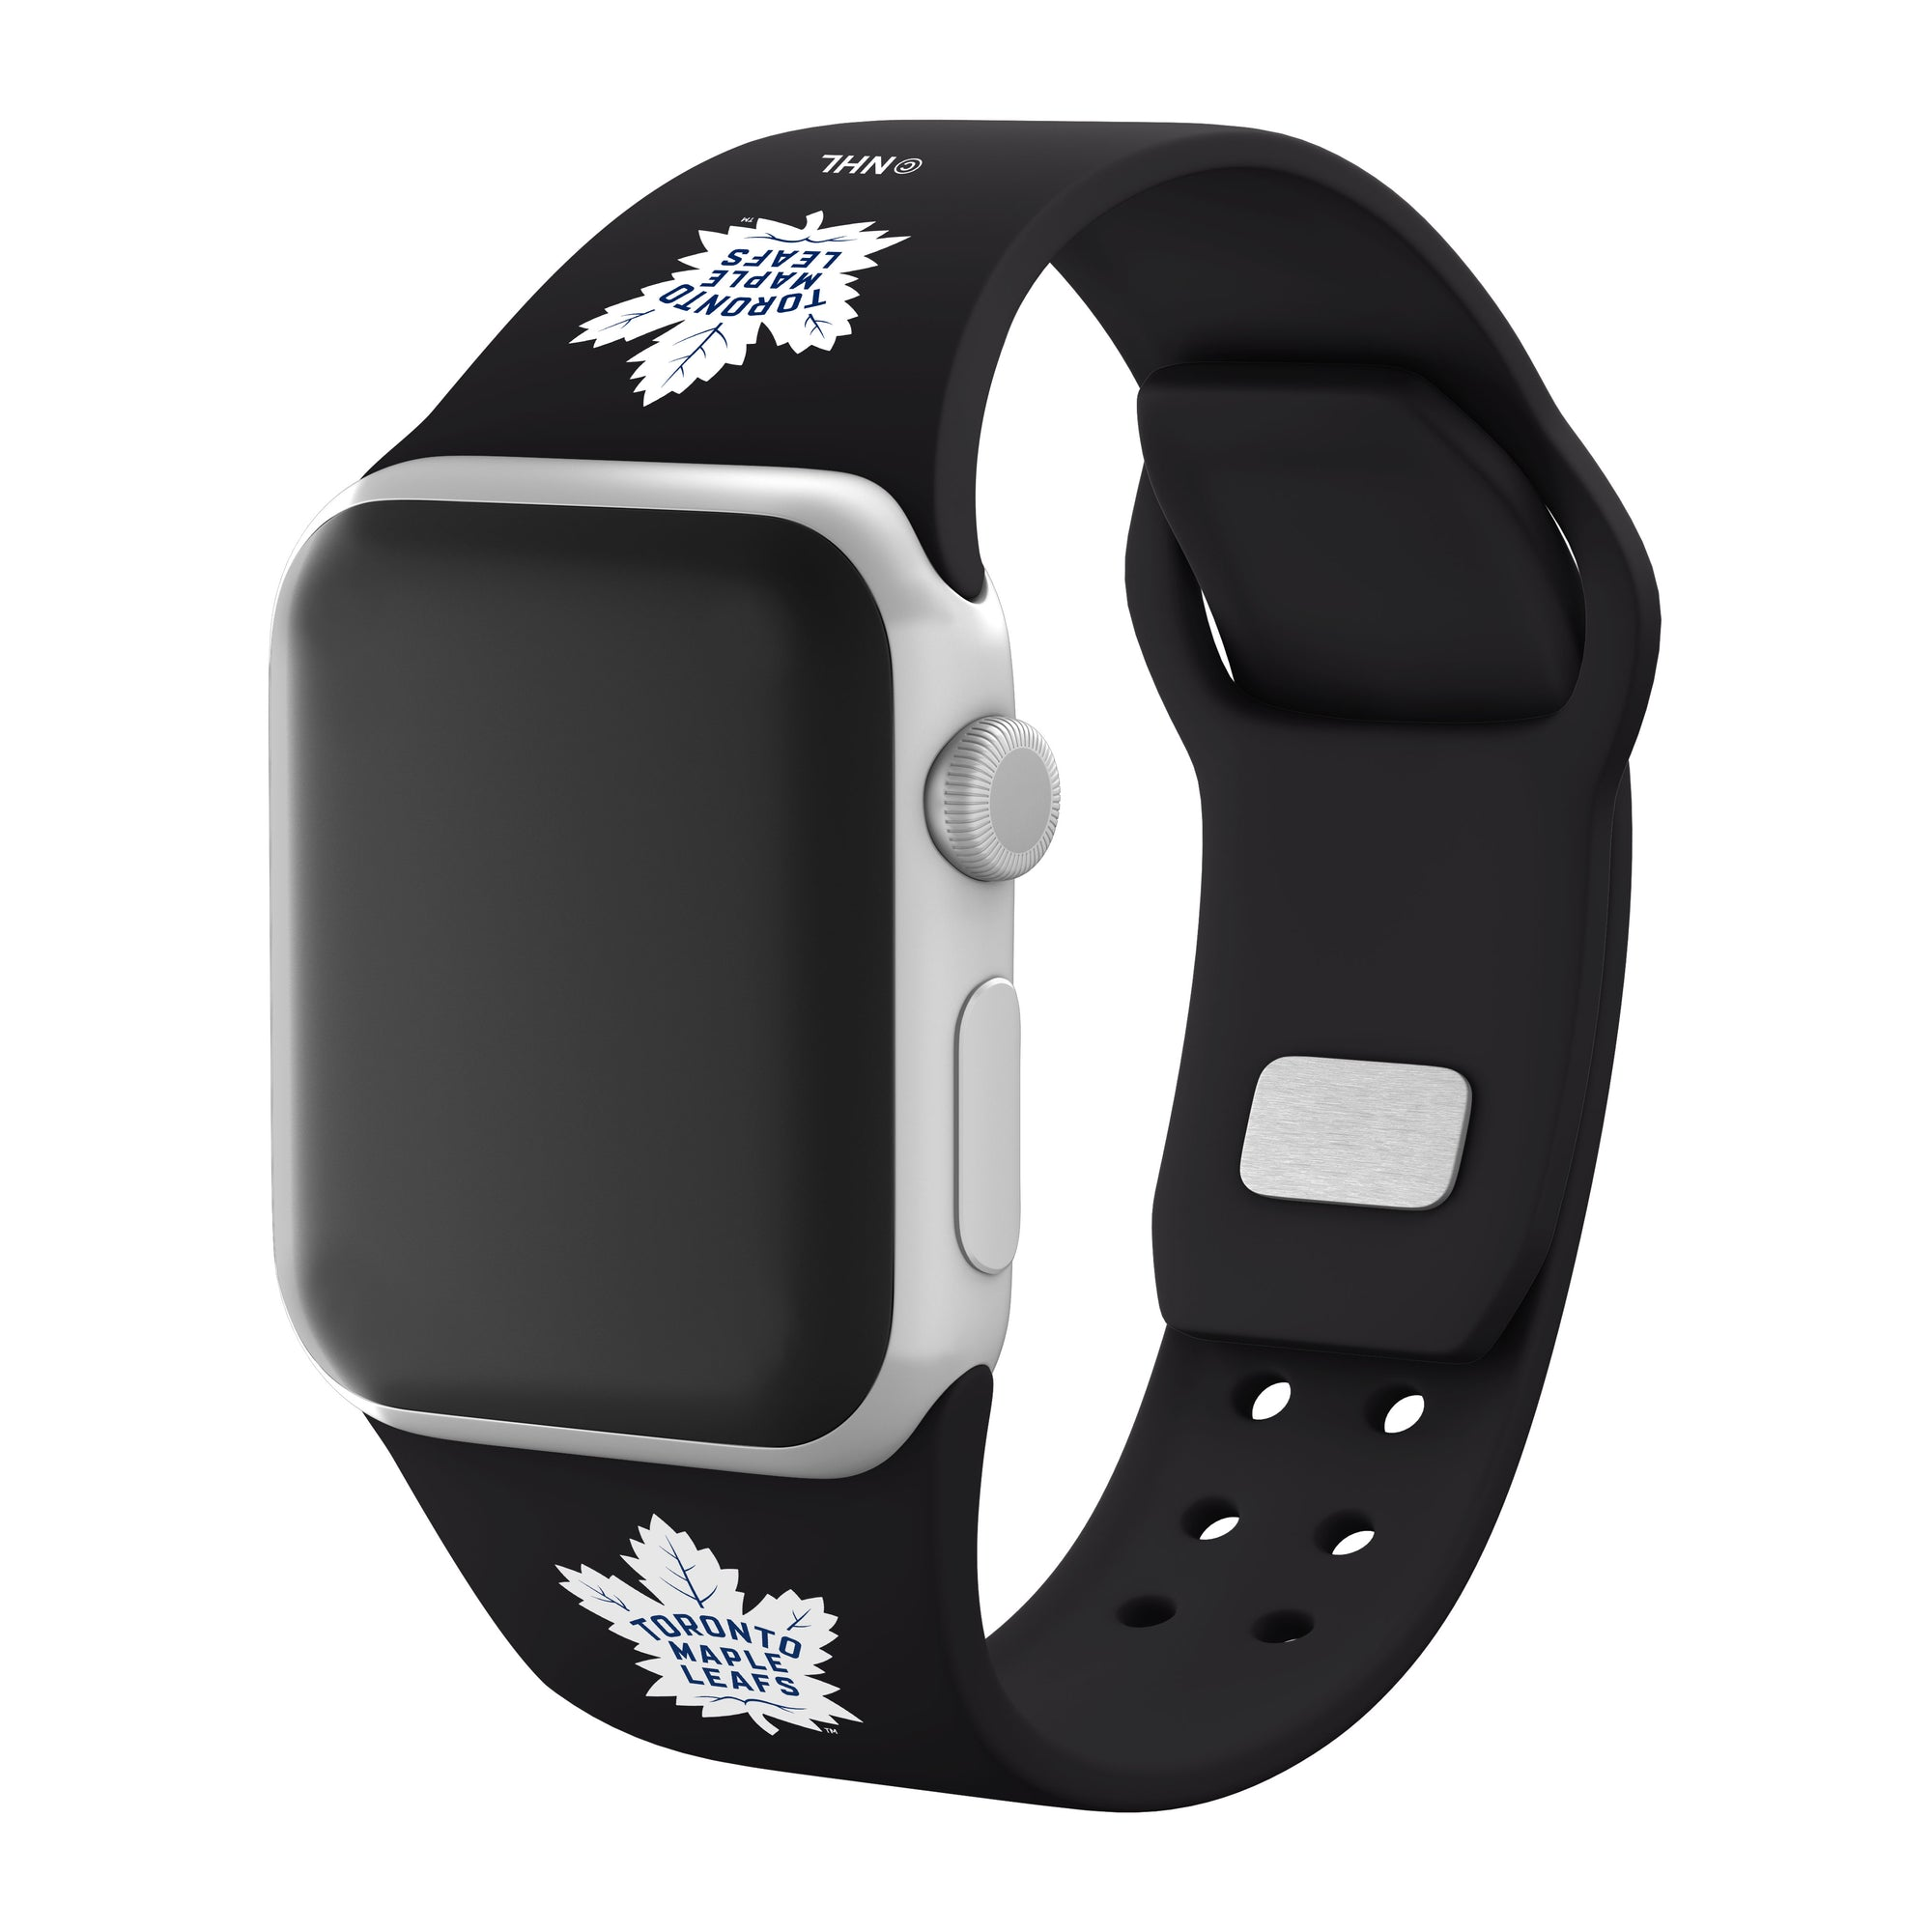 Toronto Maple Leafs Silicone Apple Watch Band - Affinity Bands